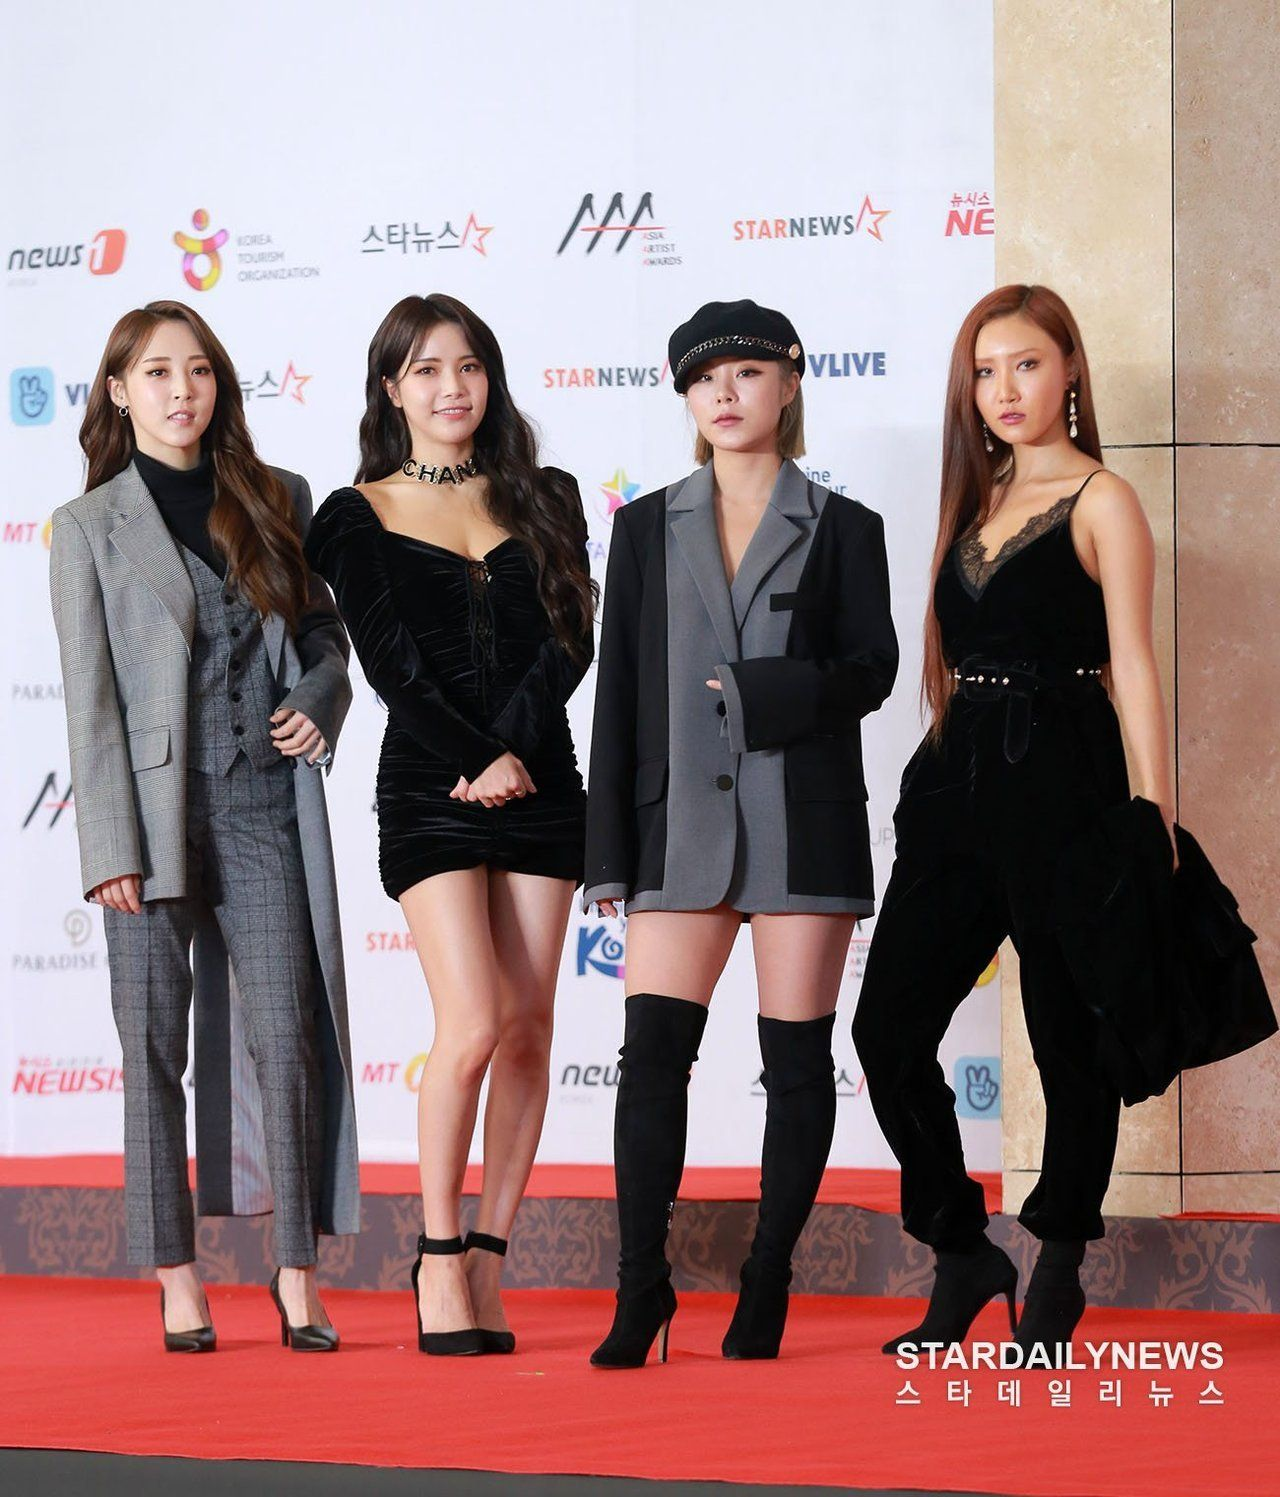 Queens Kpop Outfits Mamamoo Kpop Girls